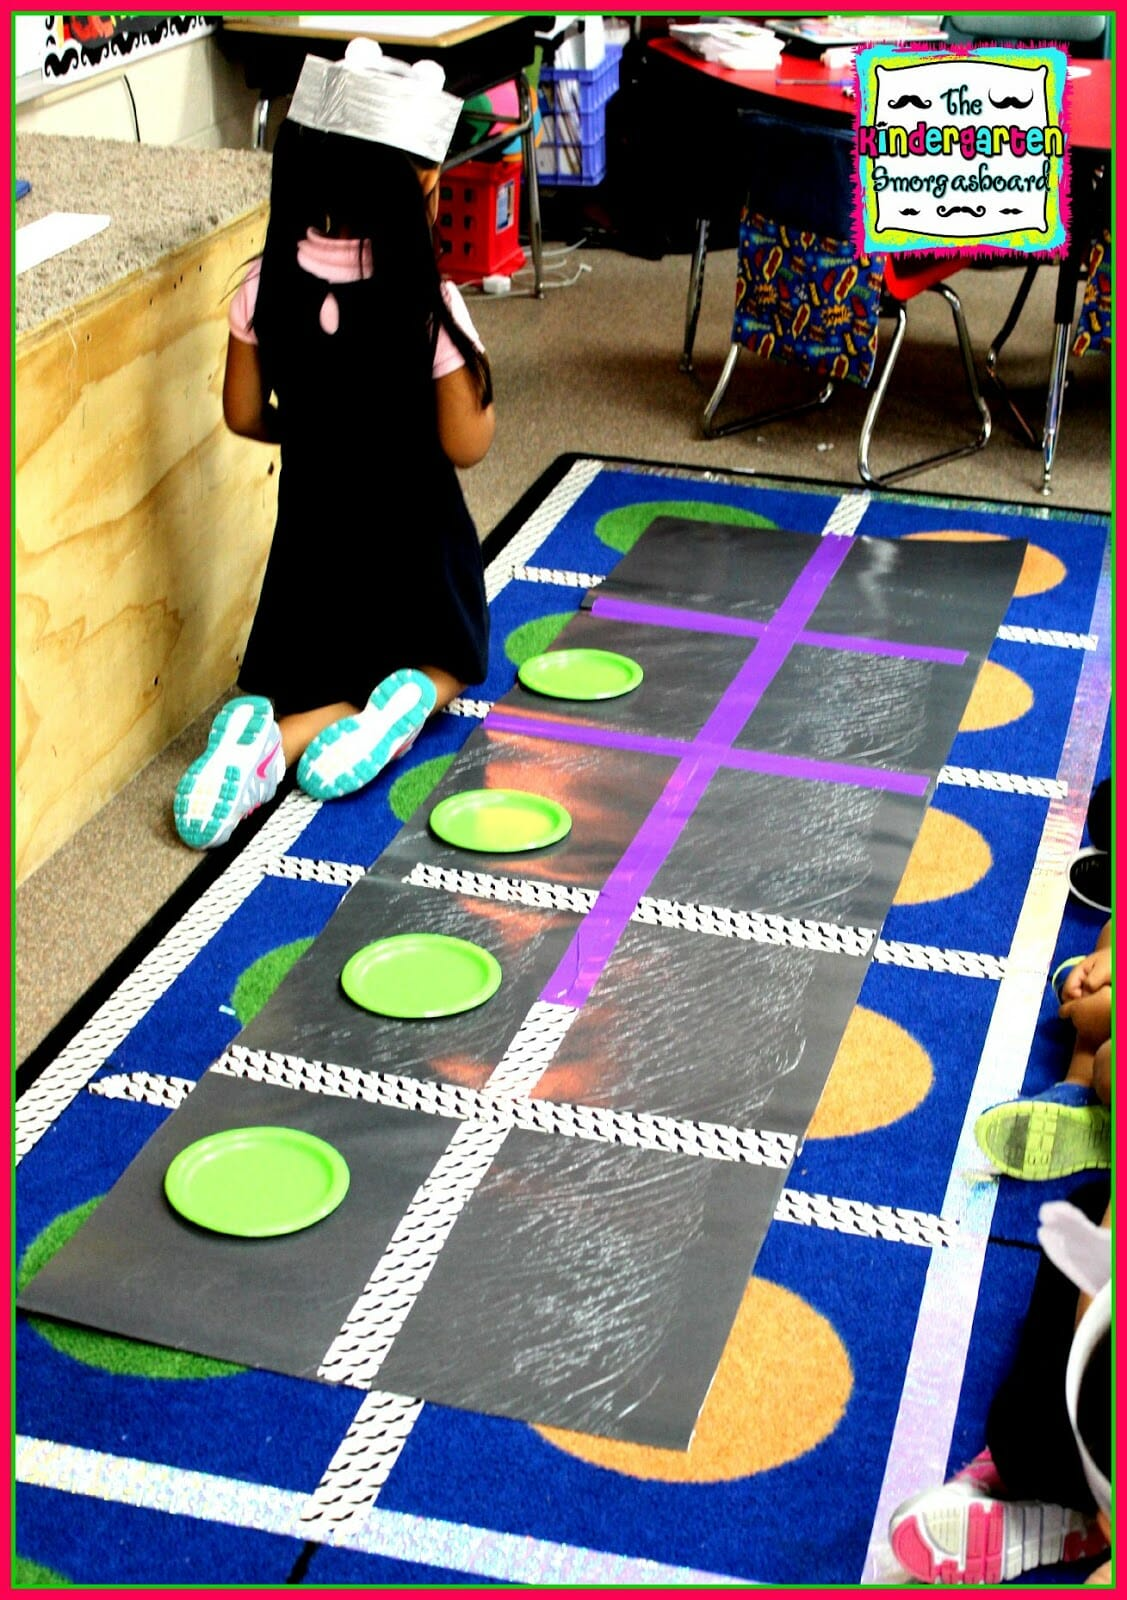 Counting With Ten Frames The Kindergarten Smorgasboard